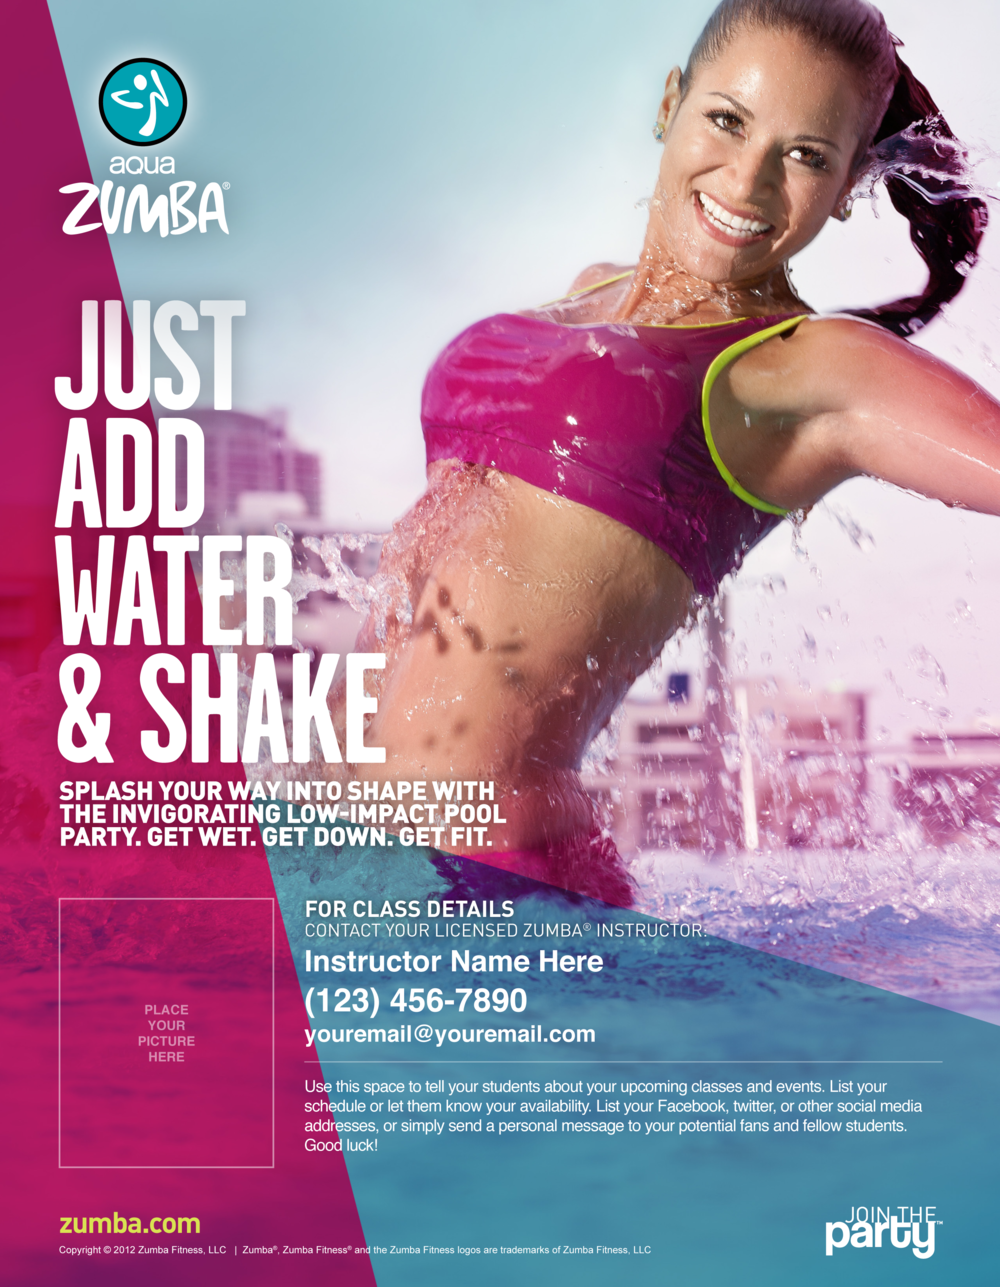 Pin by Ágnes Frohmann on ZUMBA | Pinterest | Flyers, Templates ...